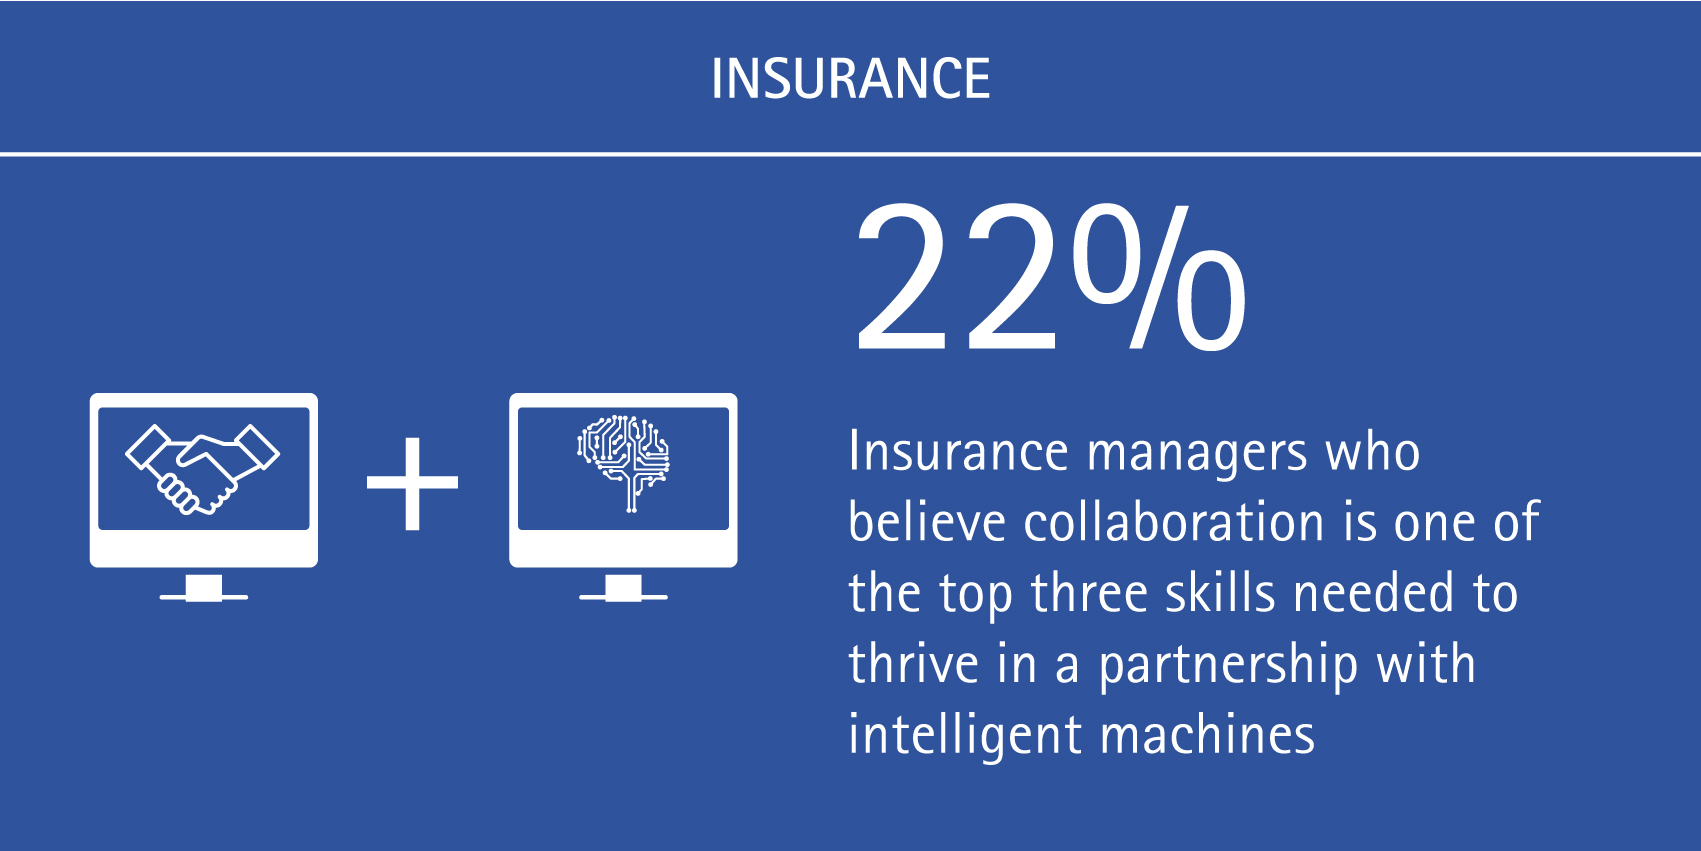 22% of insurance managers believe collaboration is one of the top three skills needed to thrive in a partnership with intelligent machines.